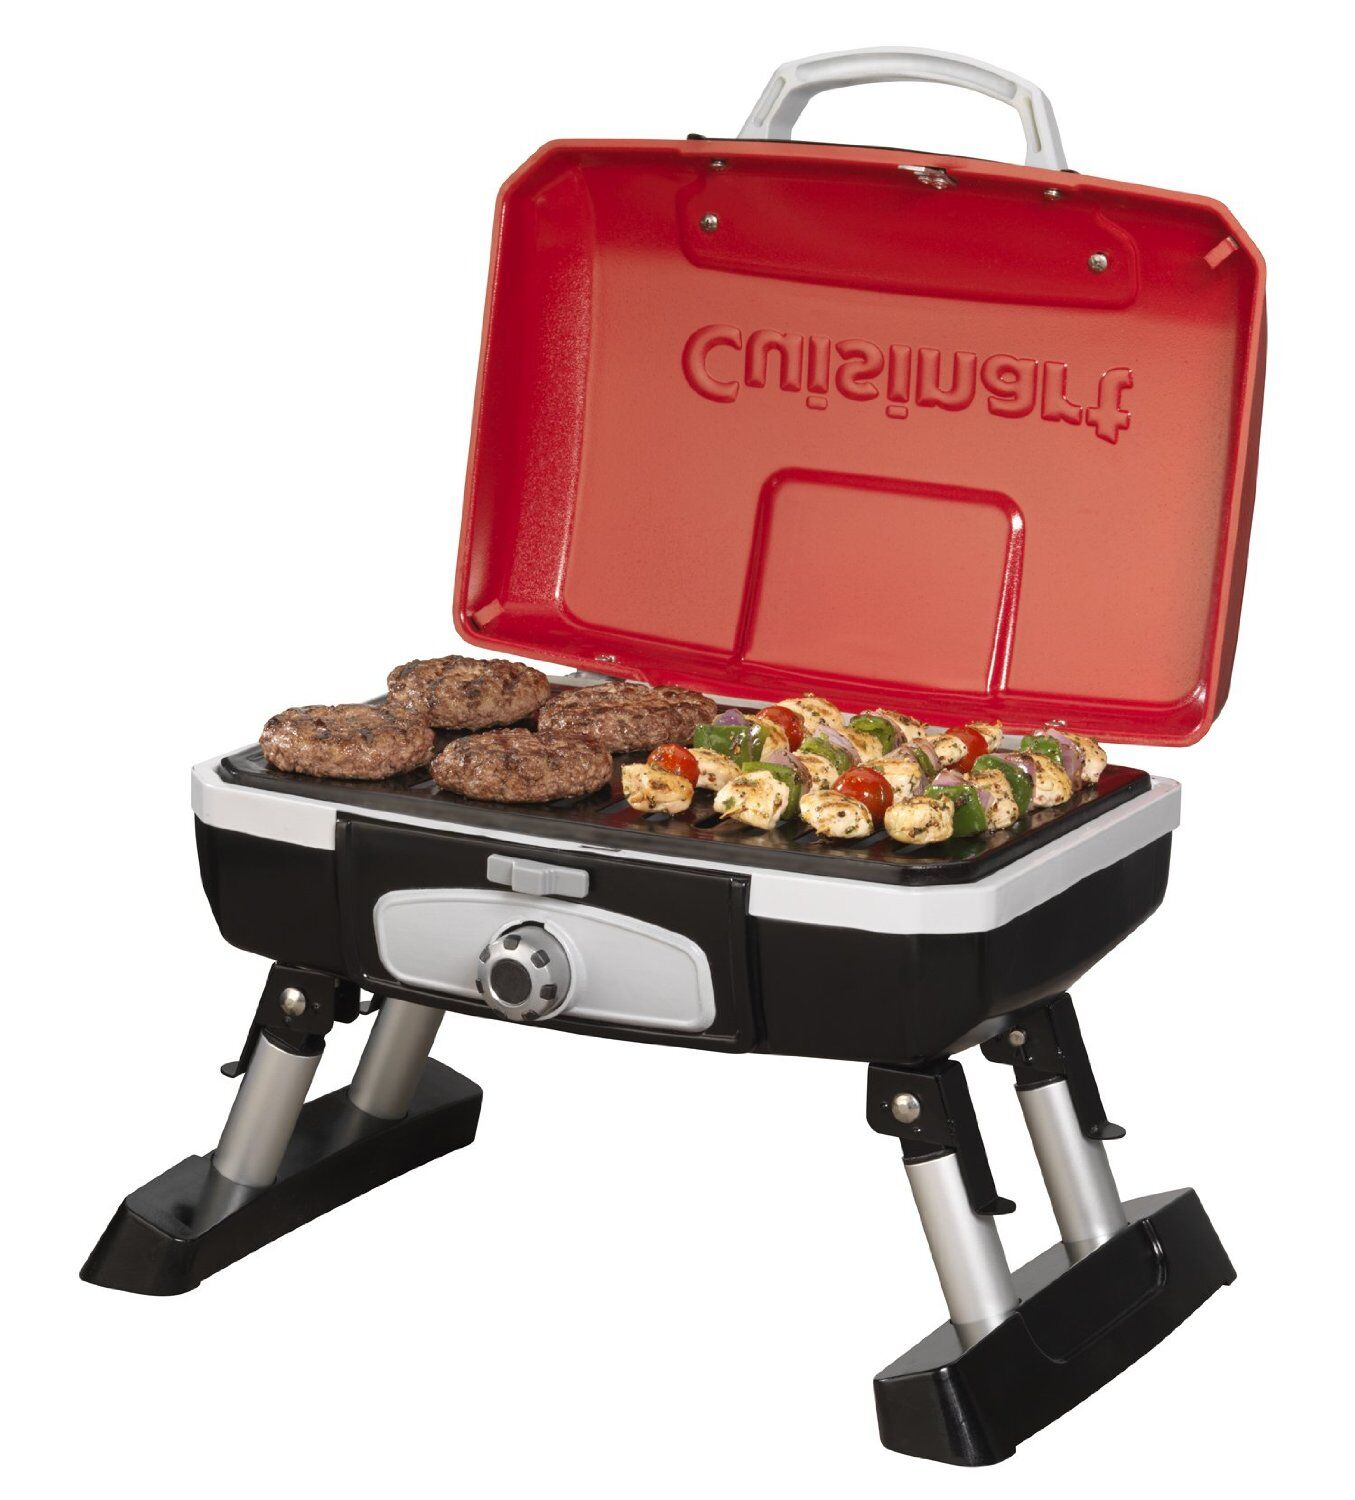 Shop Menards for a full selection of table top and portable grills to make your tailgating or picnic meal fun and easy.